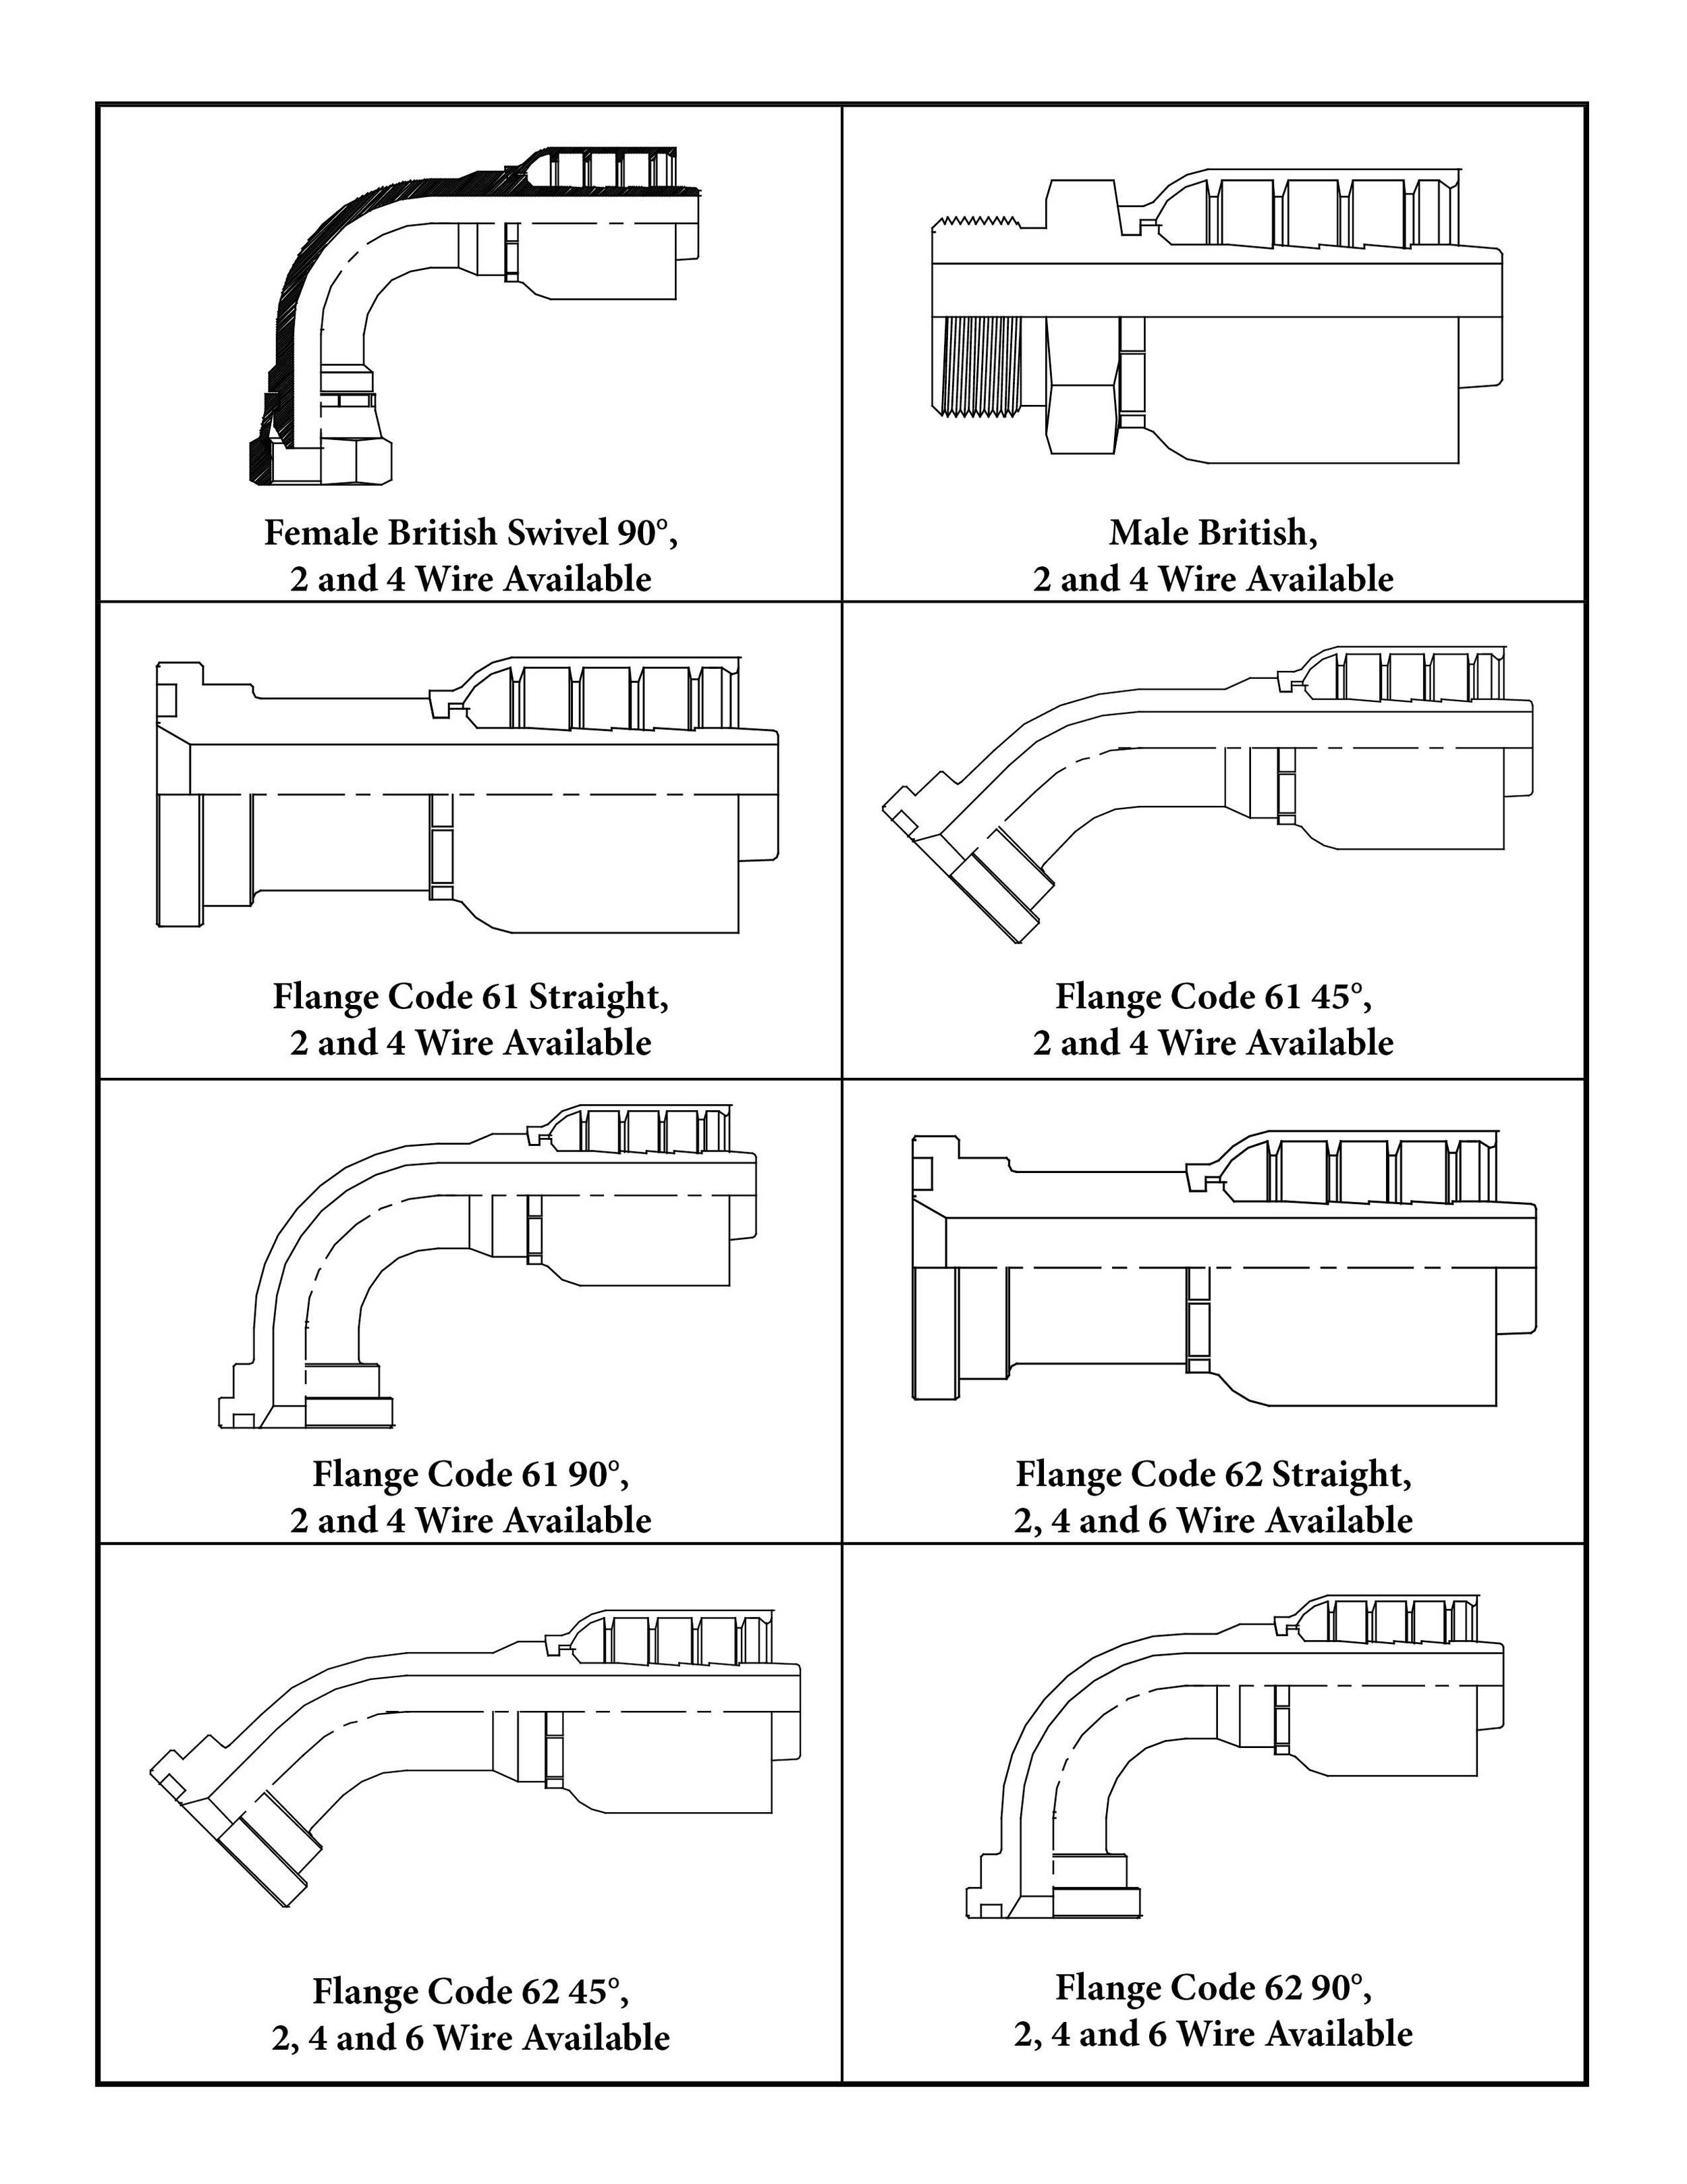 1-Piece Fittings